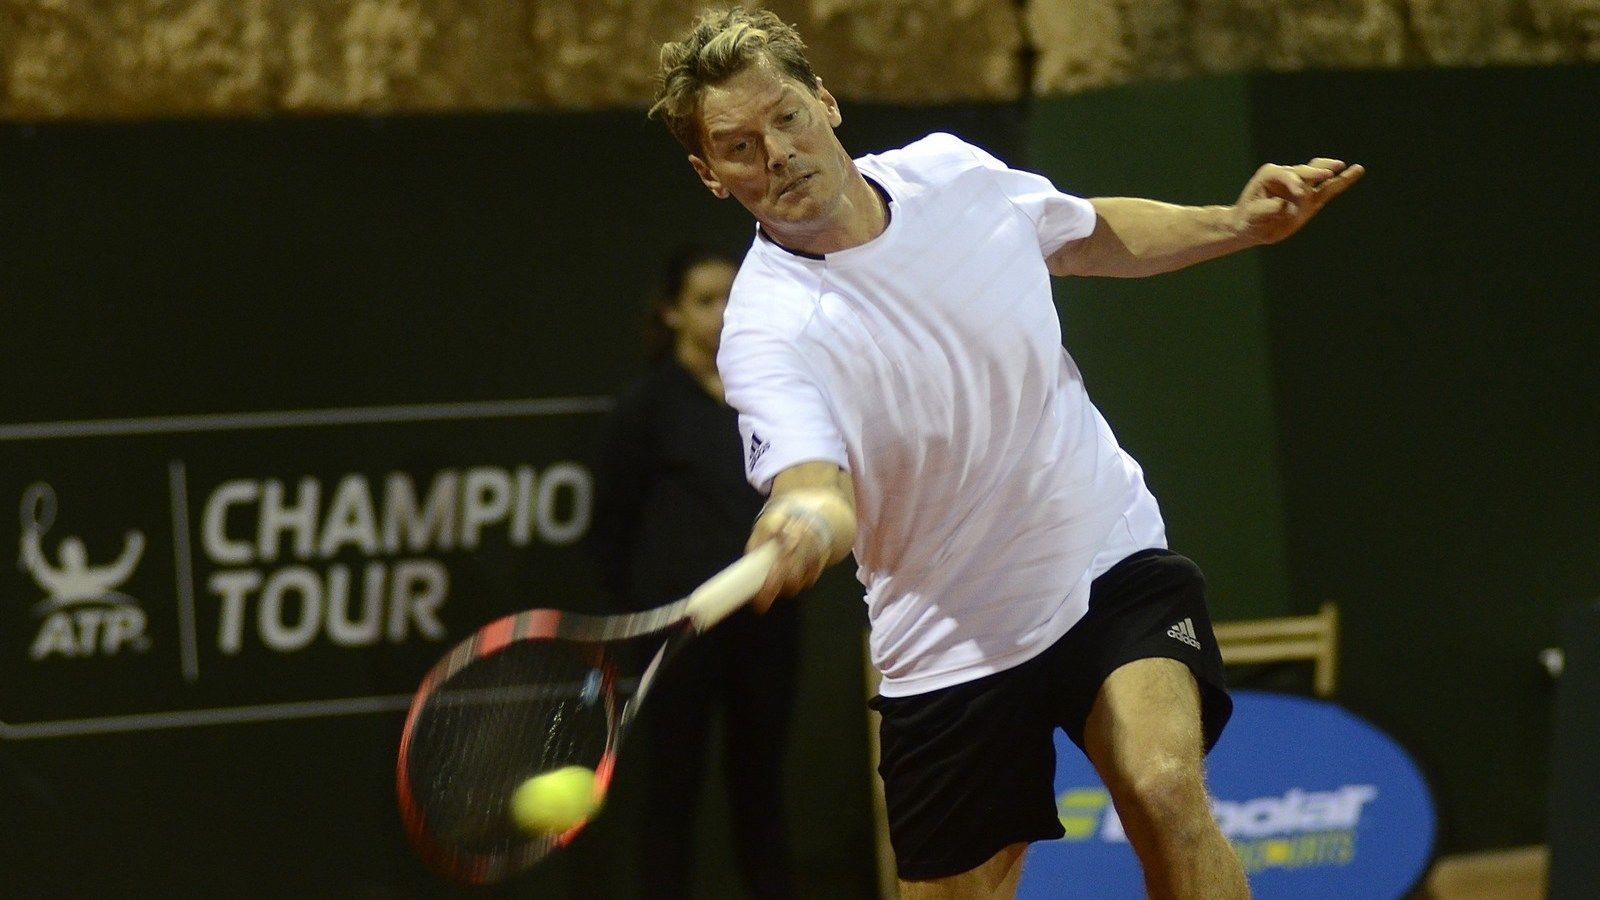 The classic tennis player: Thomas Enqvist